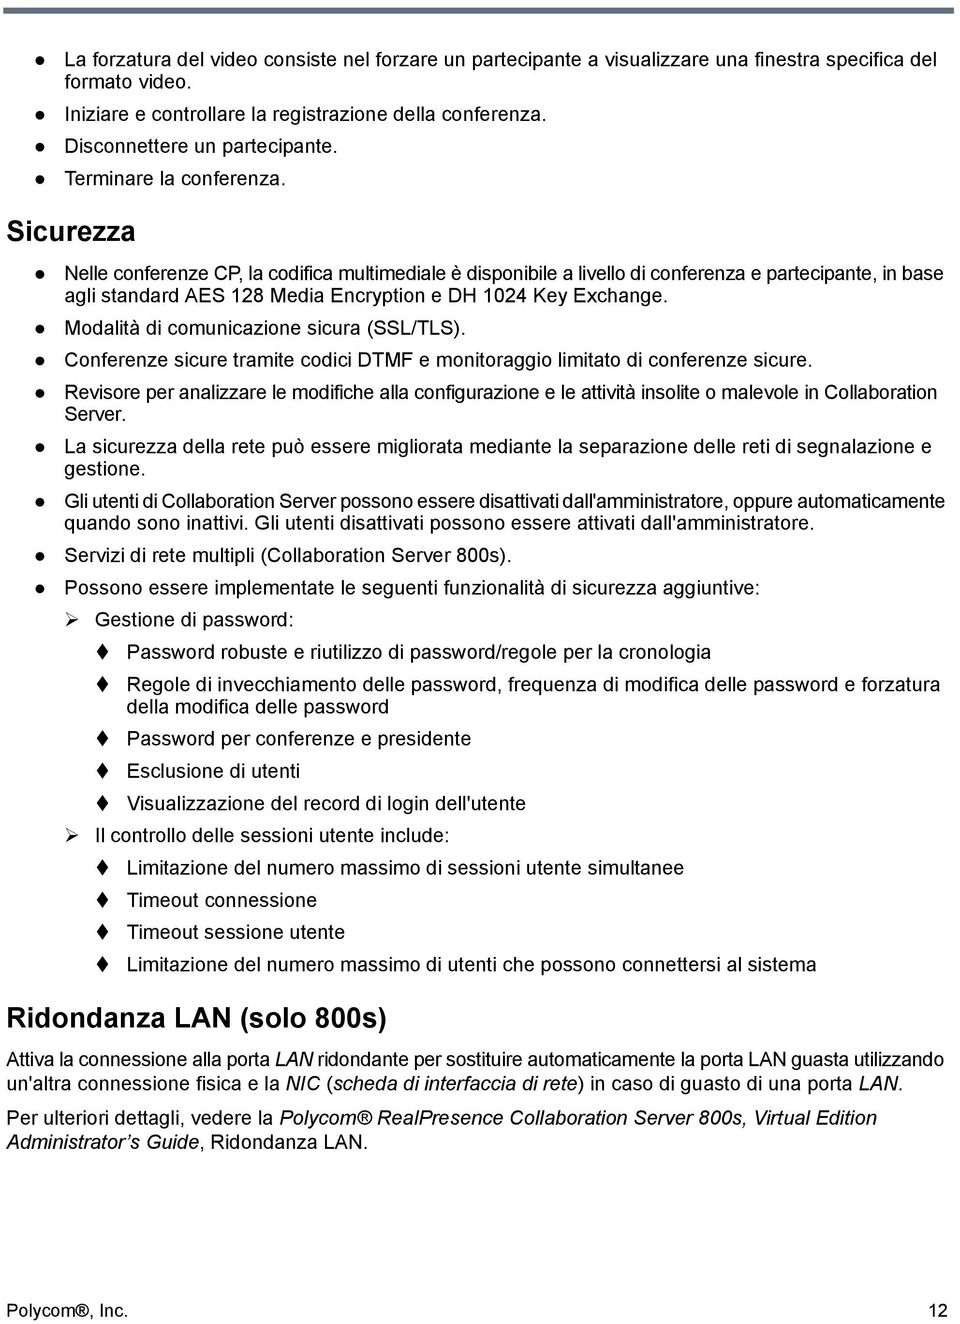 Sicurezza Nelle conferenze CP, la codifica multimediale è disponibile a livello di conferenza e partecipante, in base agli standard AES 128 Media Encryption e DH 1024 Key Exchange.